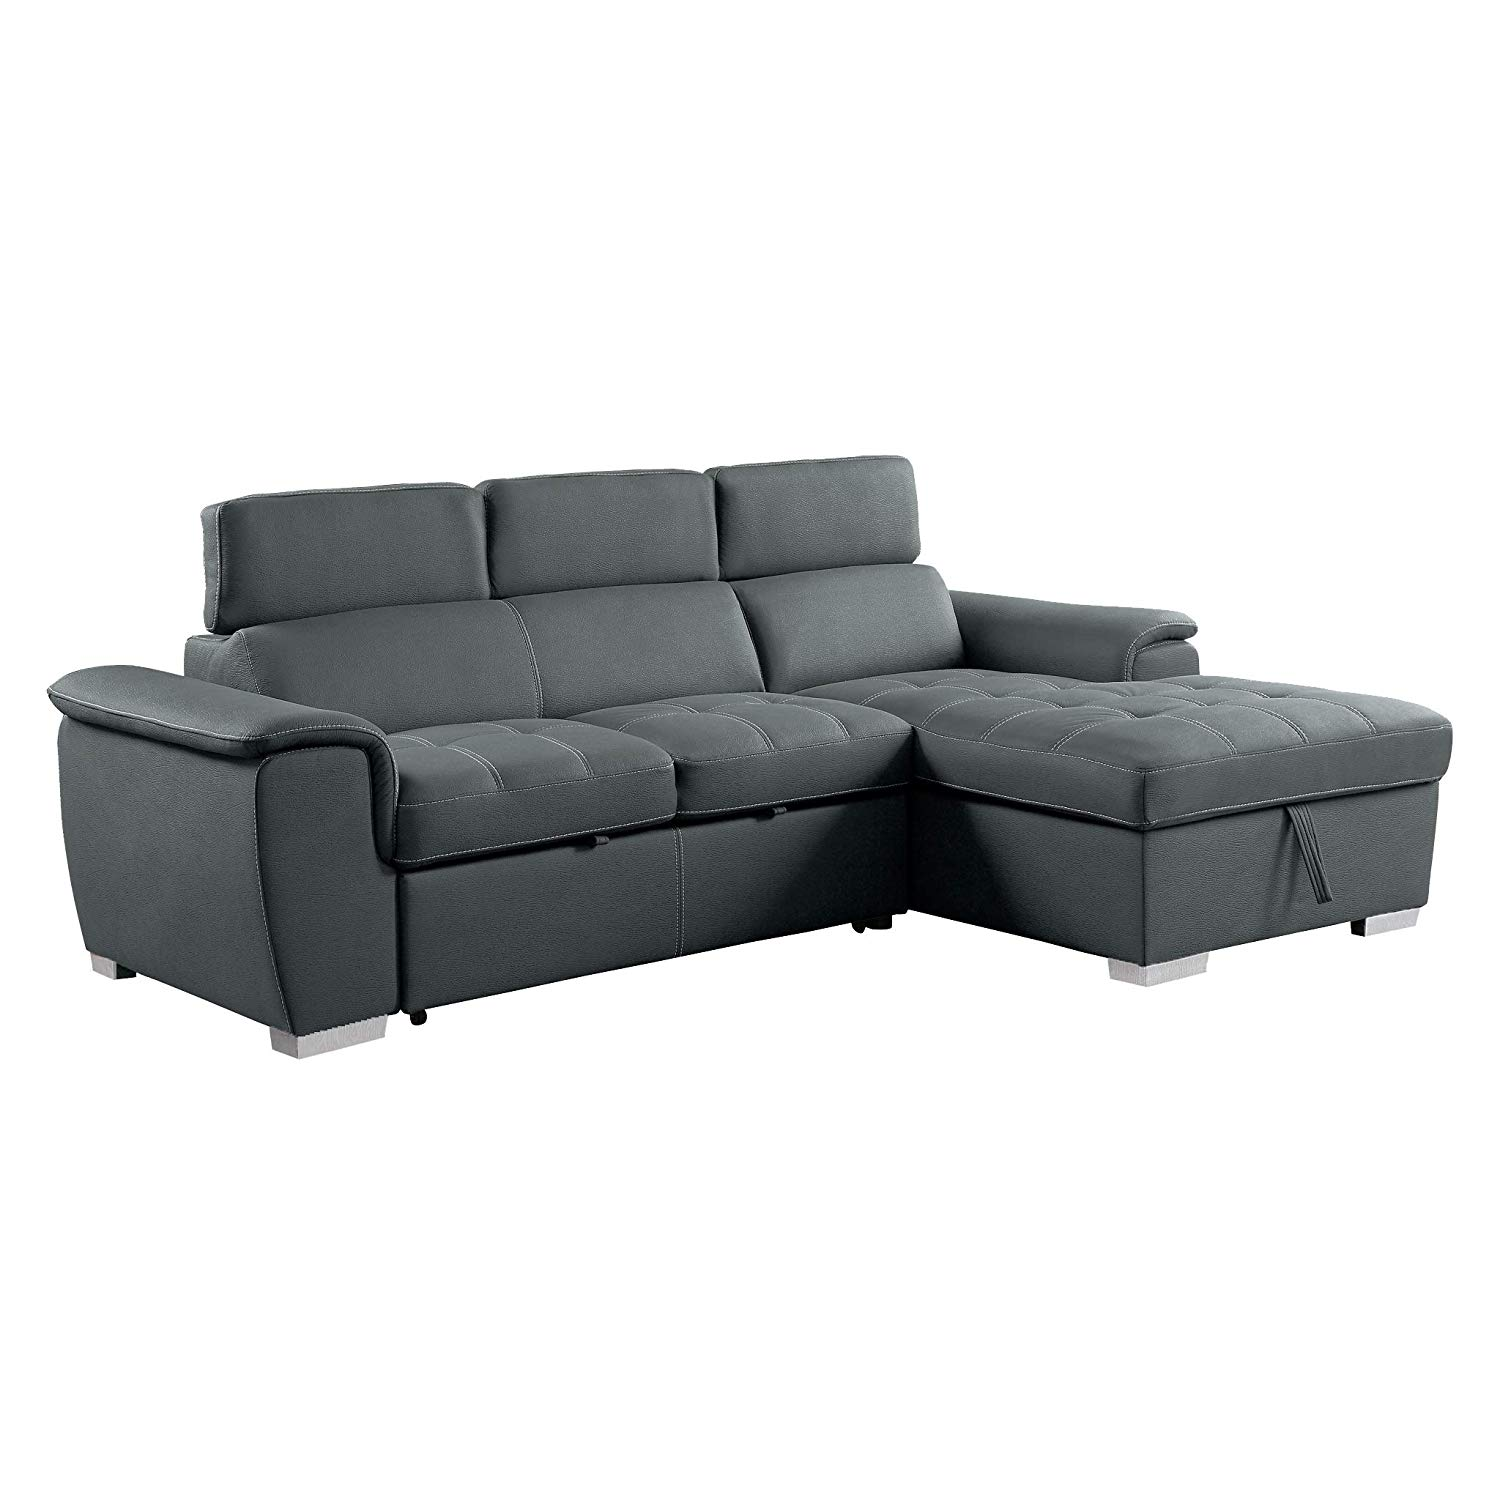 Traveller Location: Homelegance 8228 Sleeper Sectional Sofa with Storage, Gray:  Kitchen & Dining